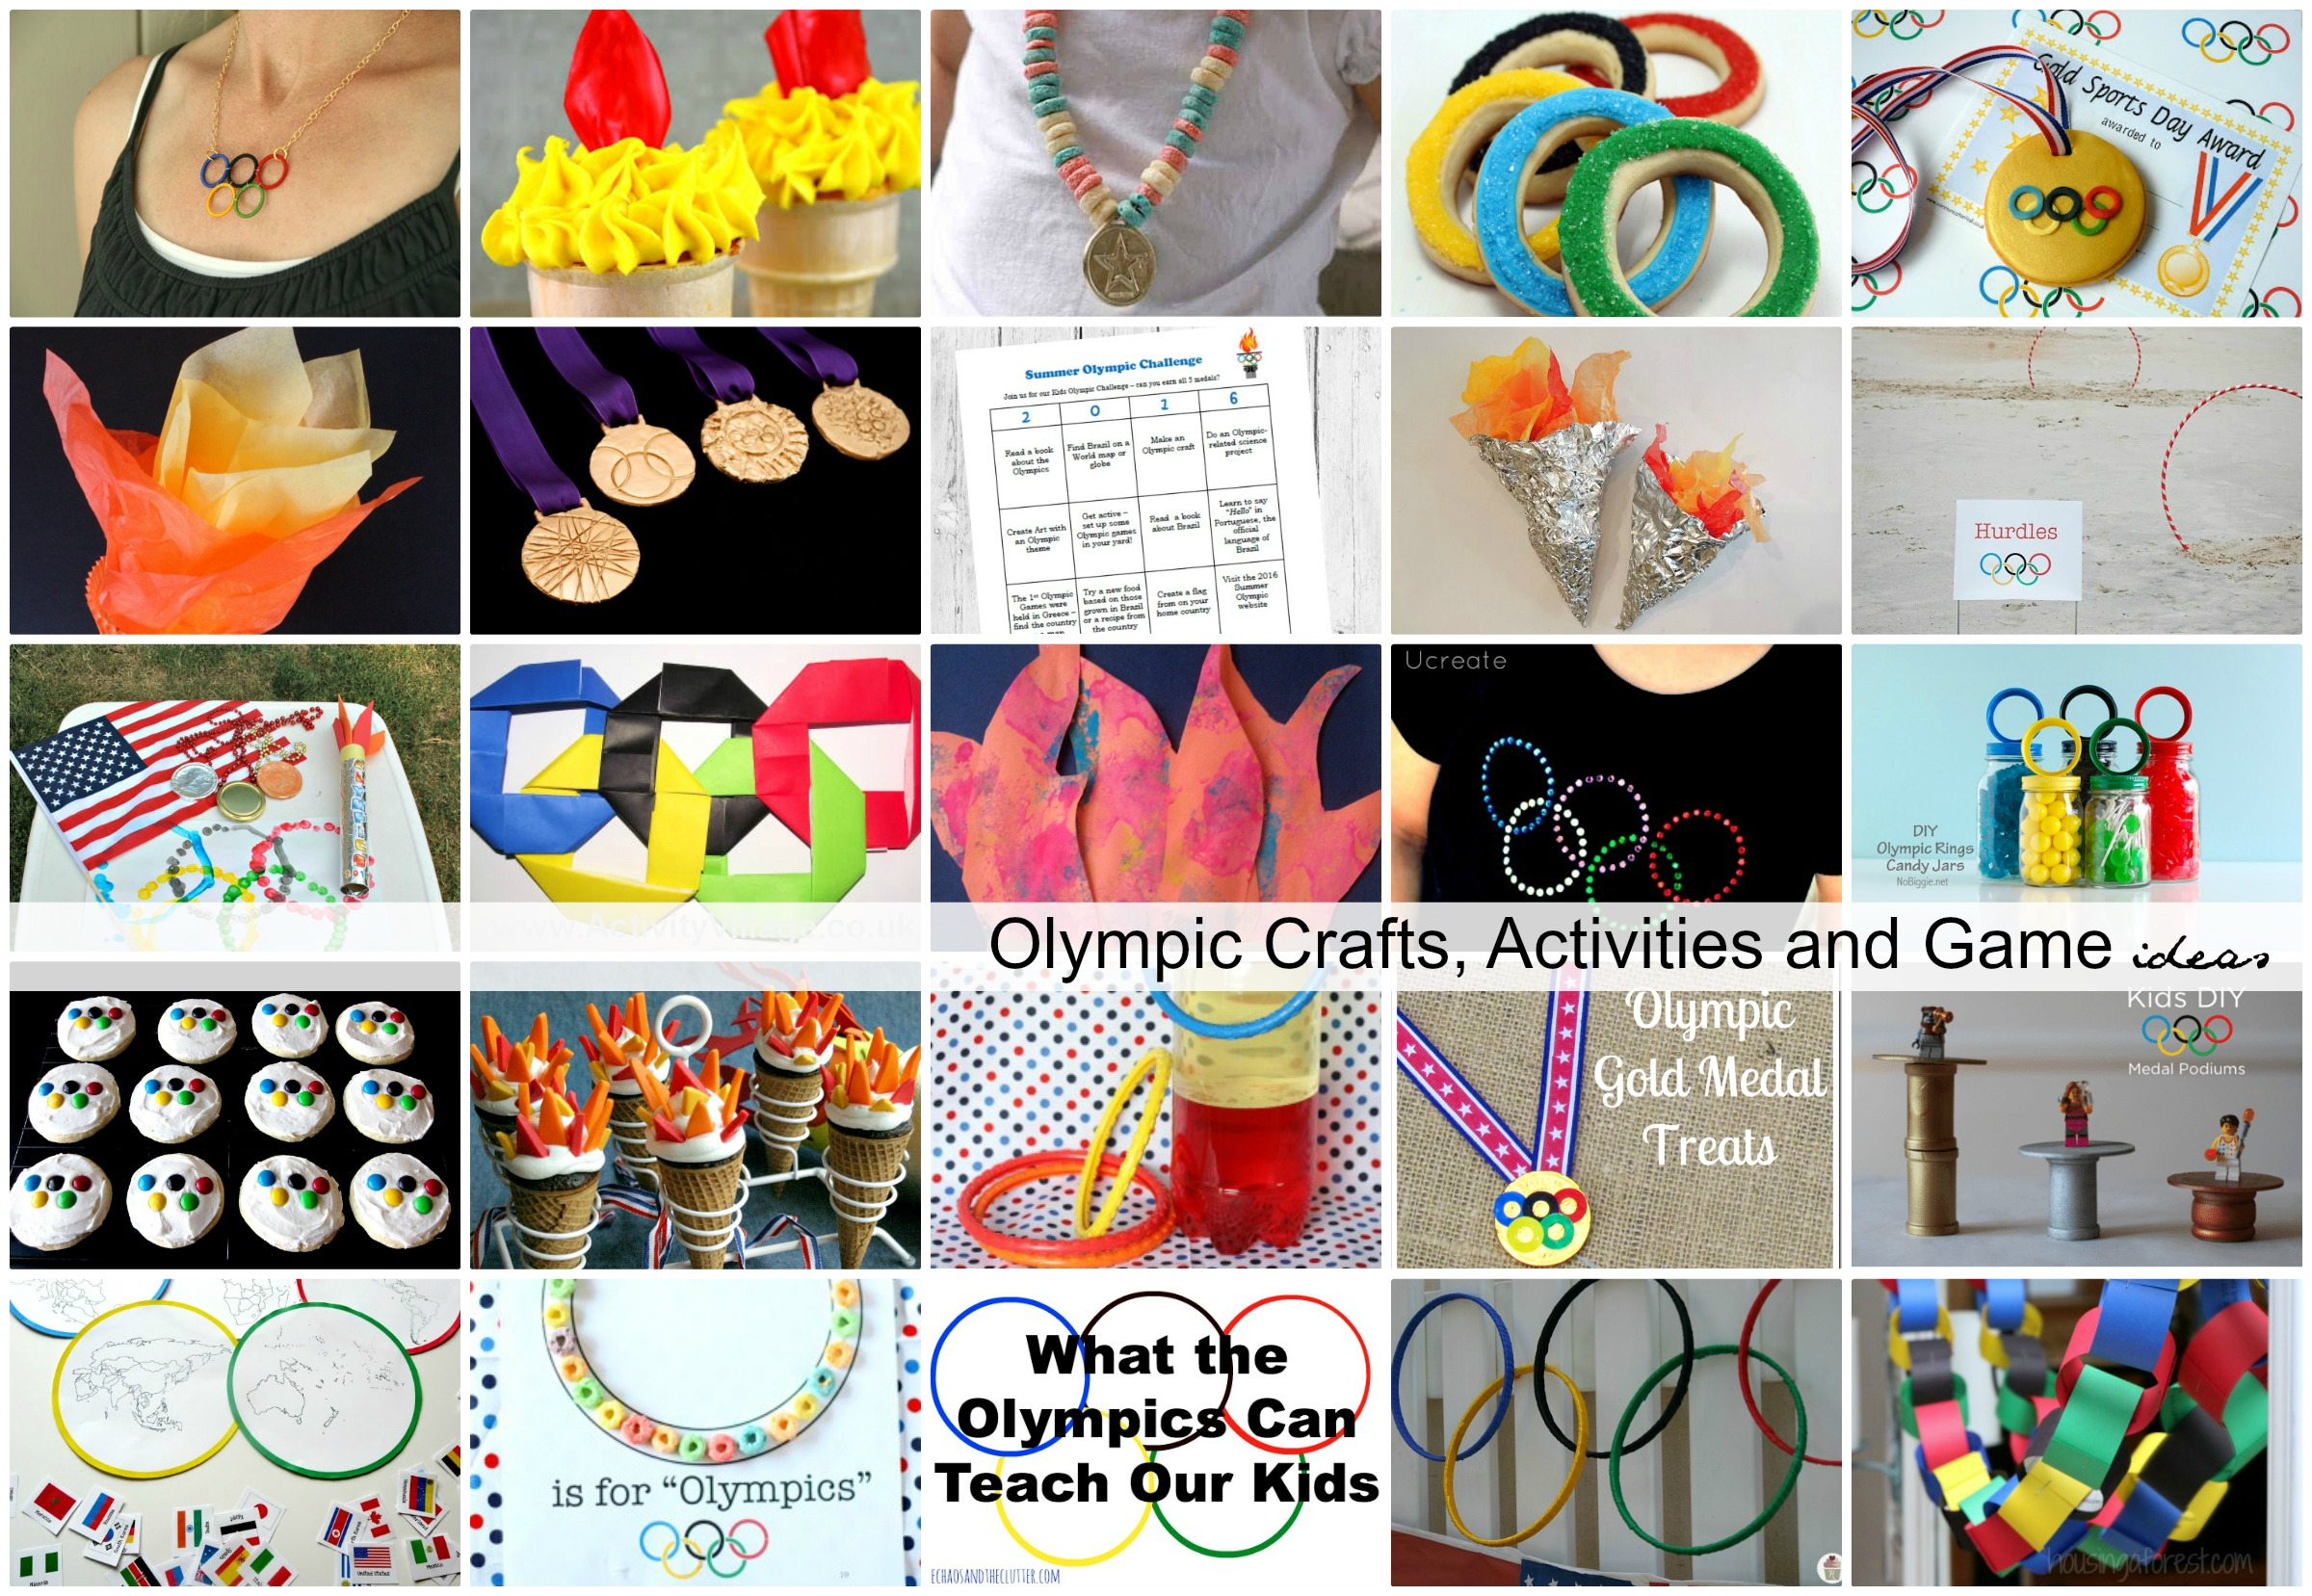 Olympic-Crafts-Games-Activities-1